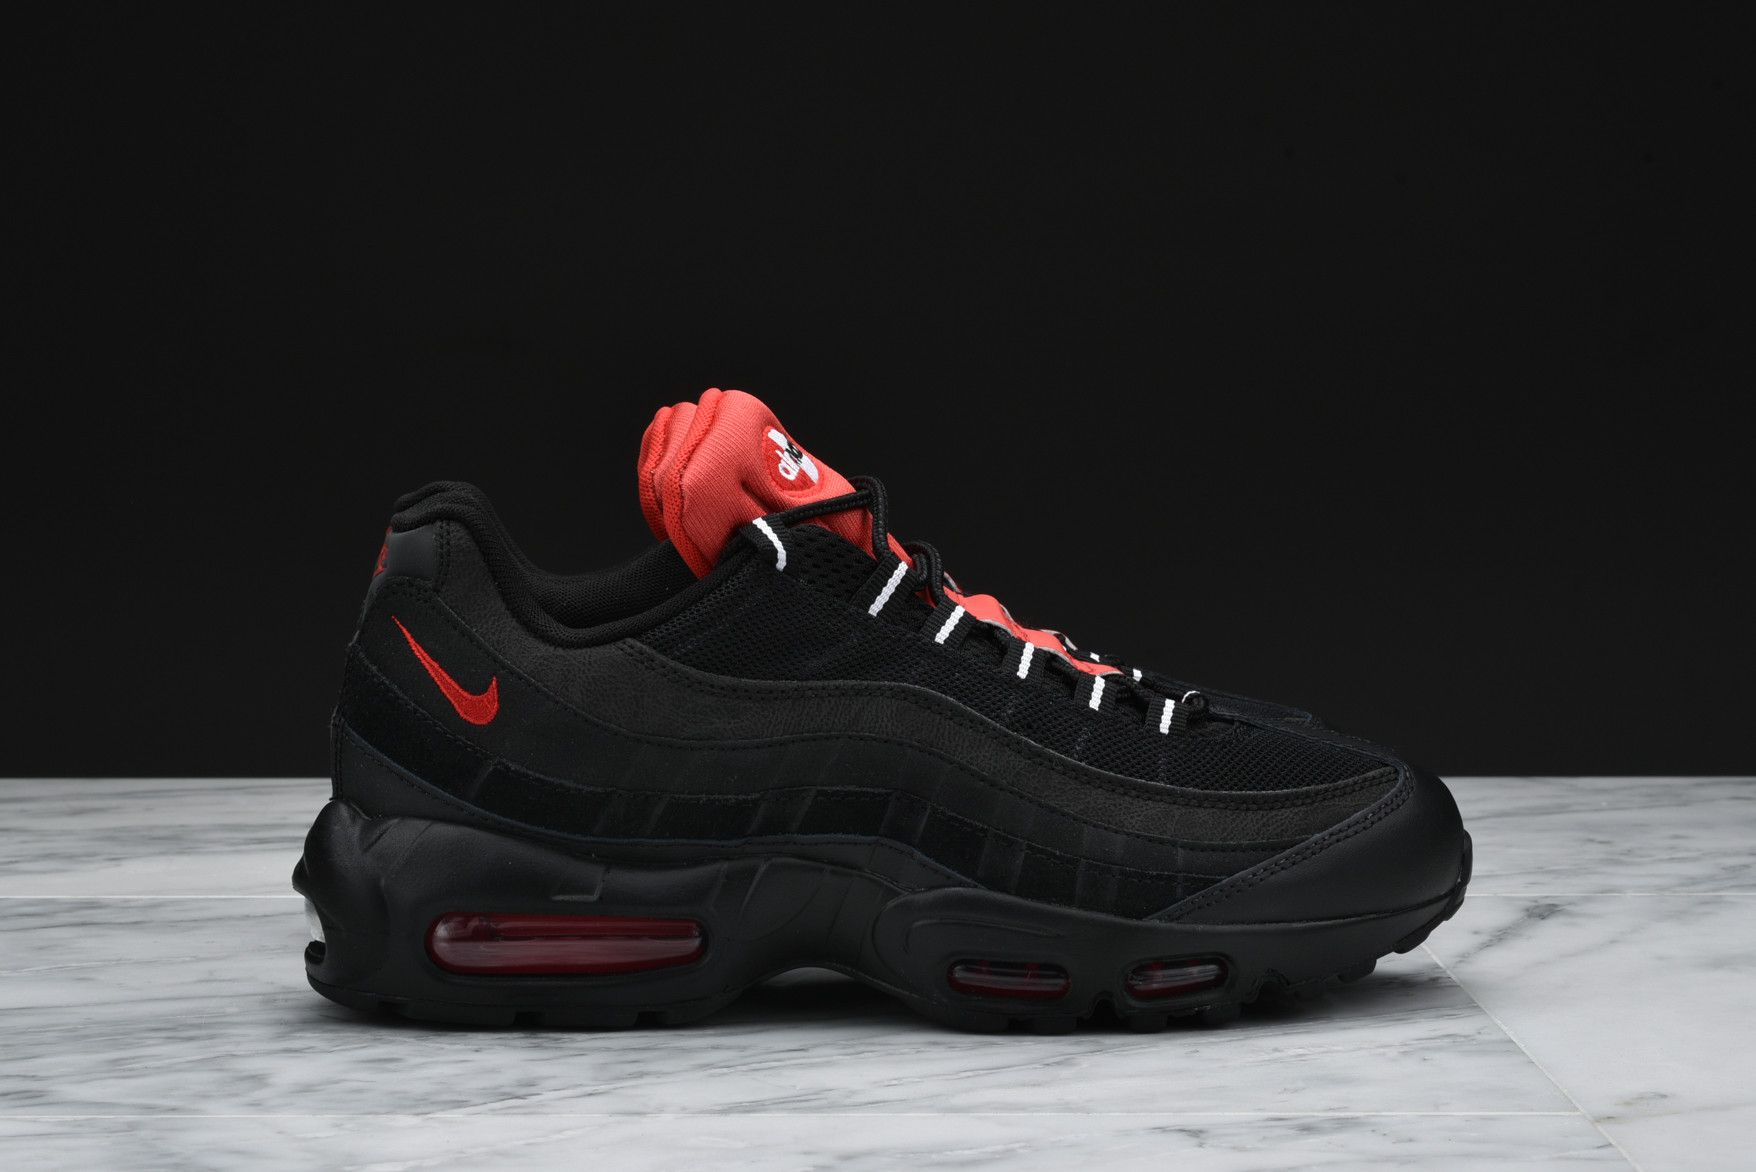 Pops Of Challenge Red Highlight This Nike Air Max 95